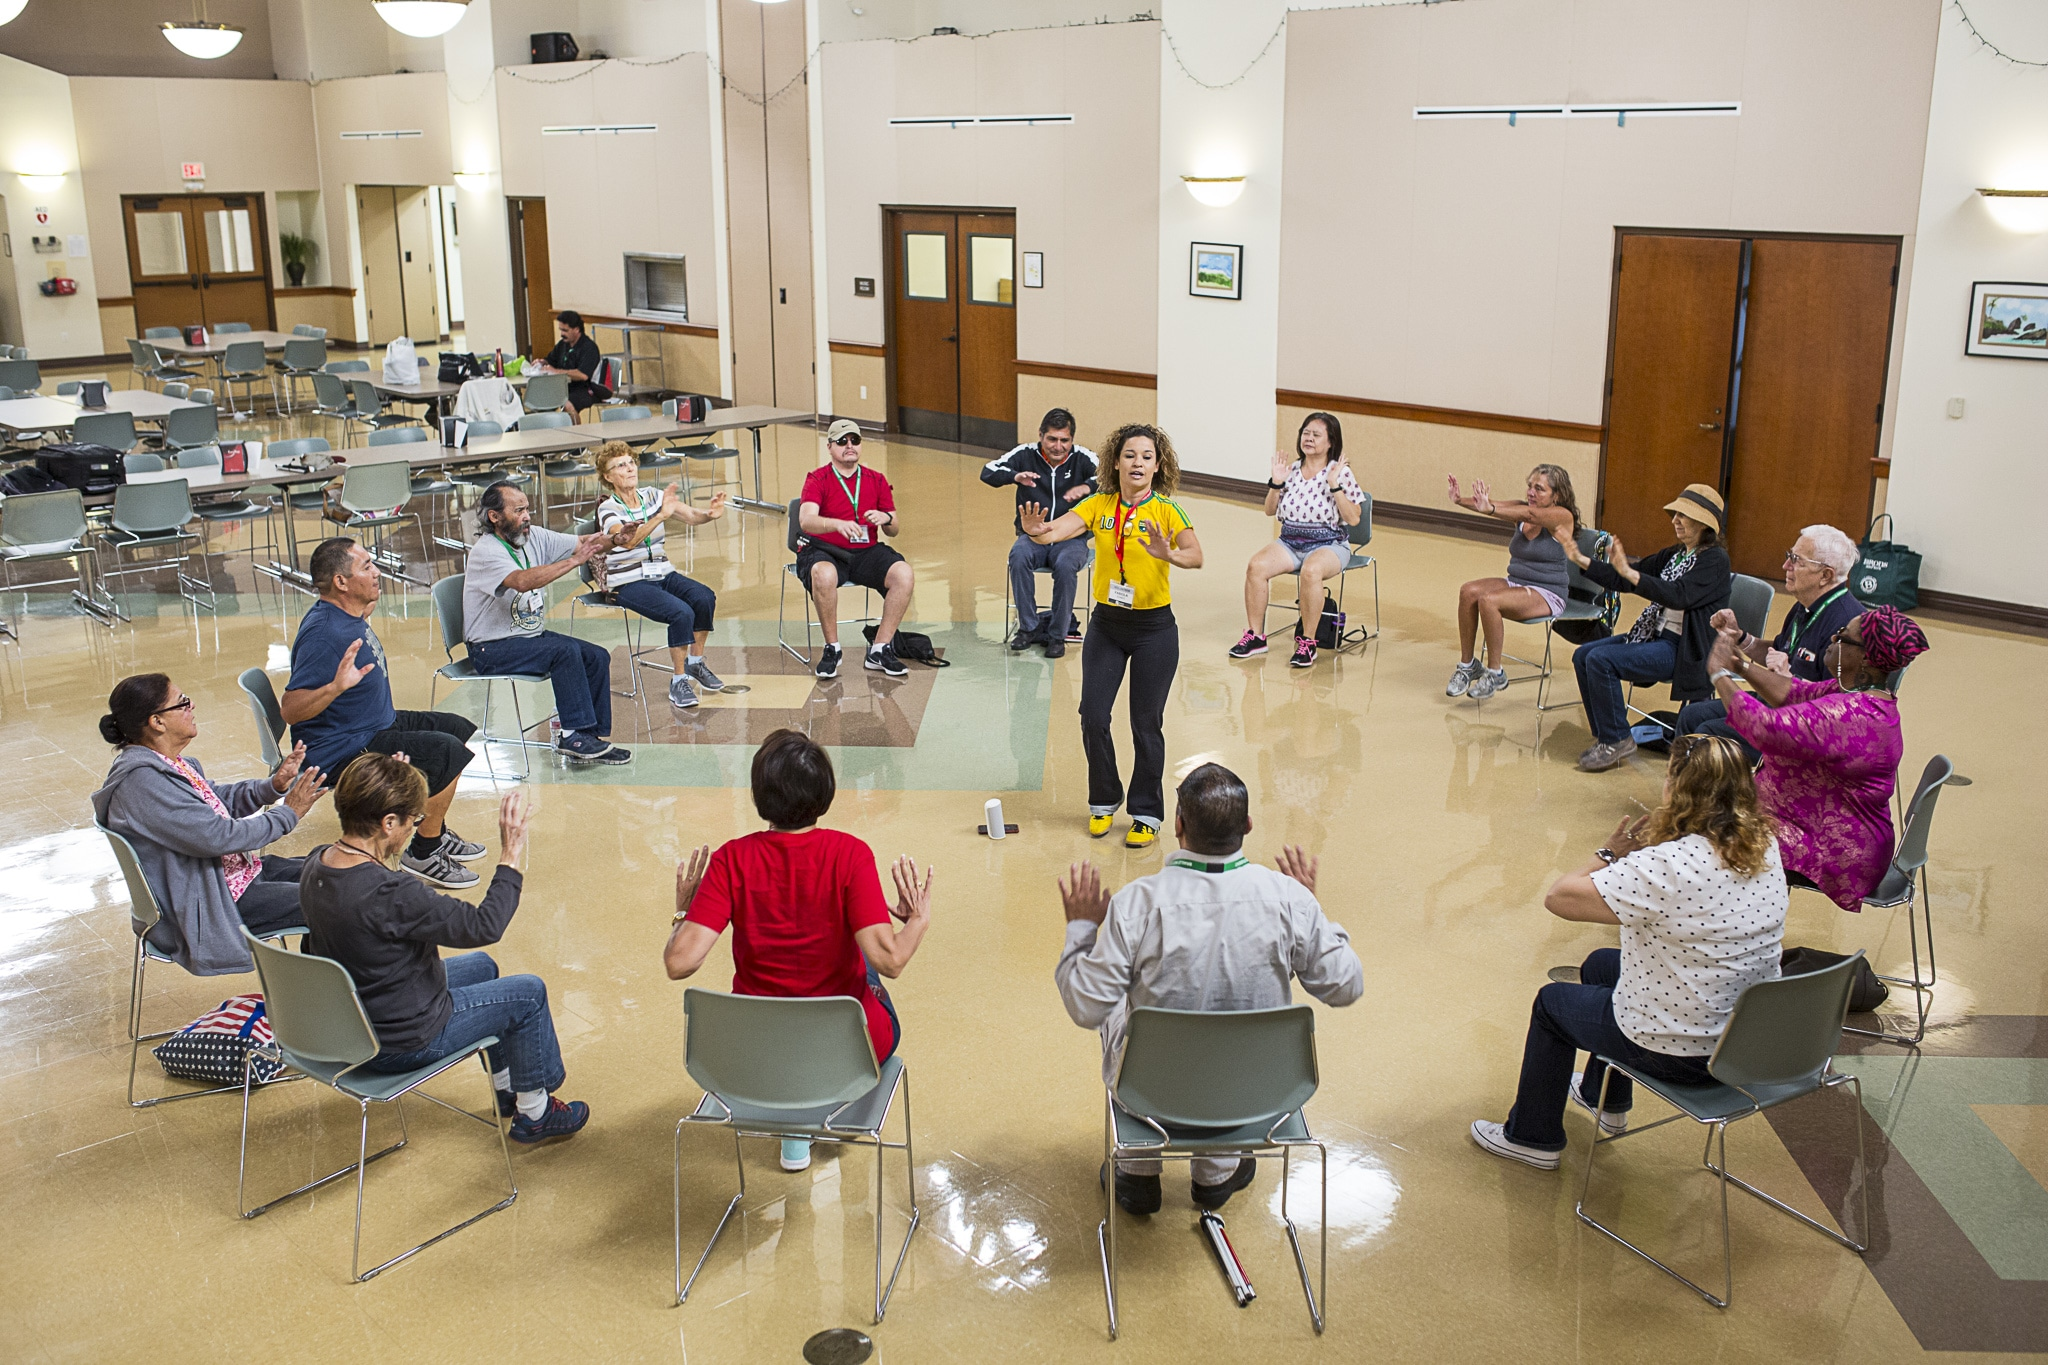 15 people sitting in a circle following the movement directions of the instructor in the middle.